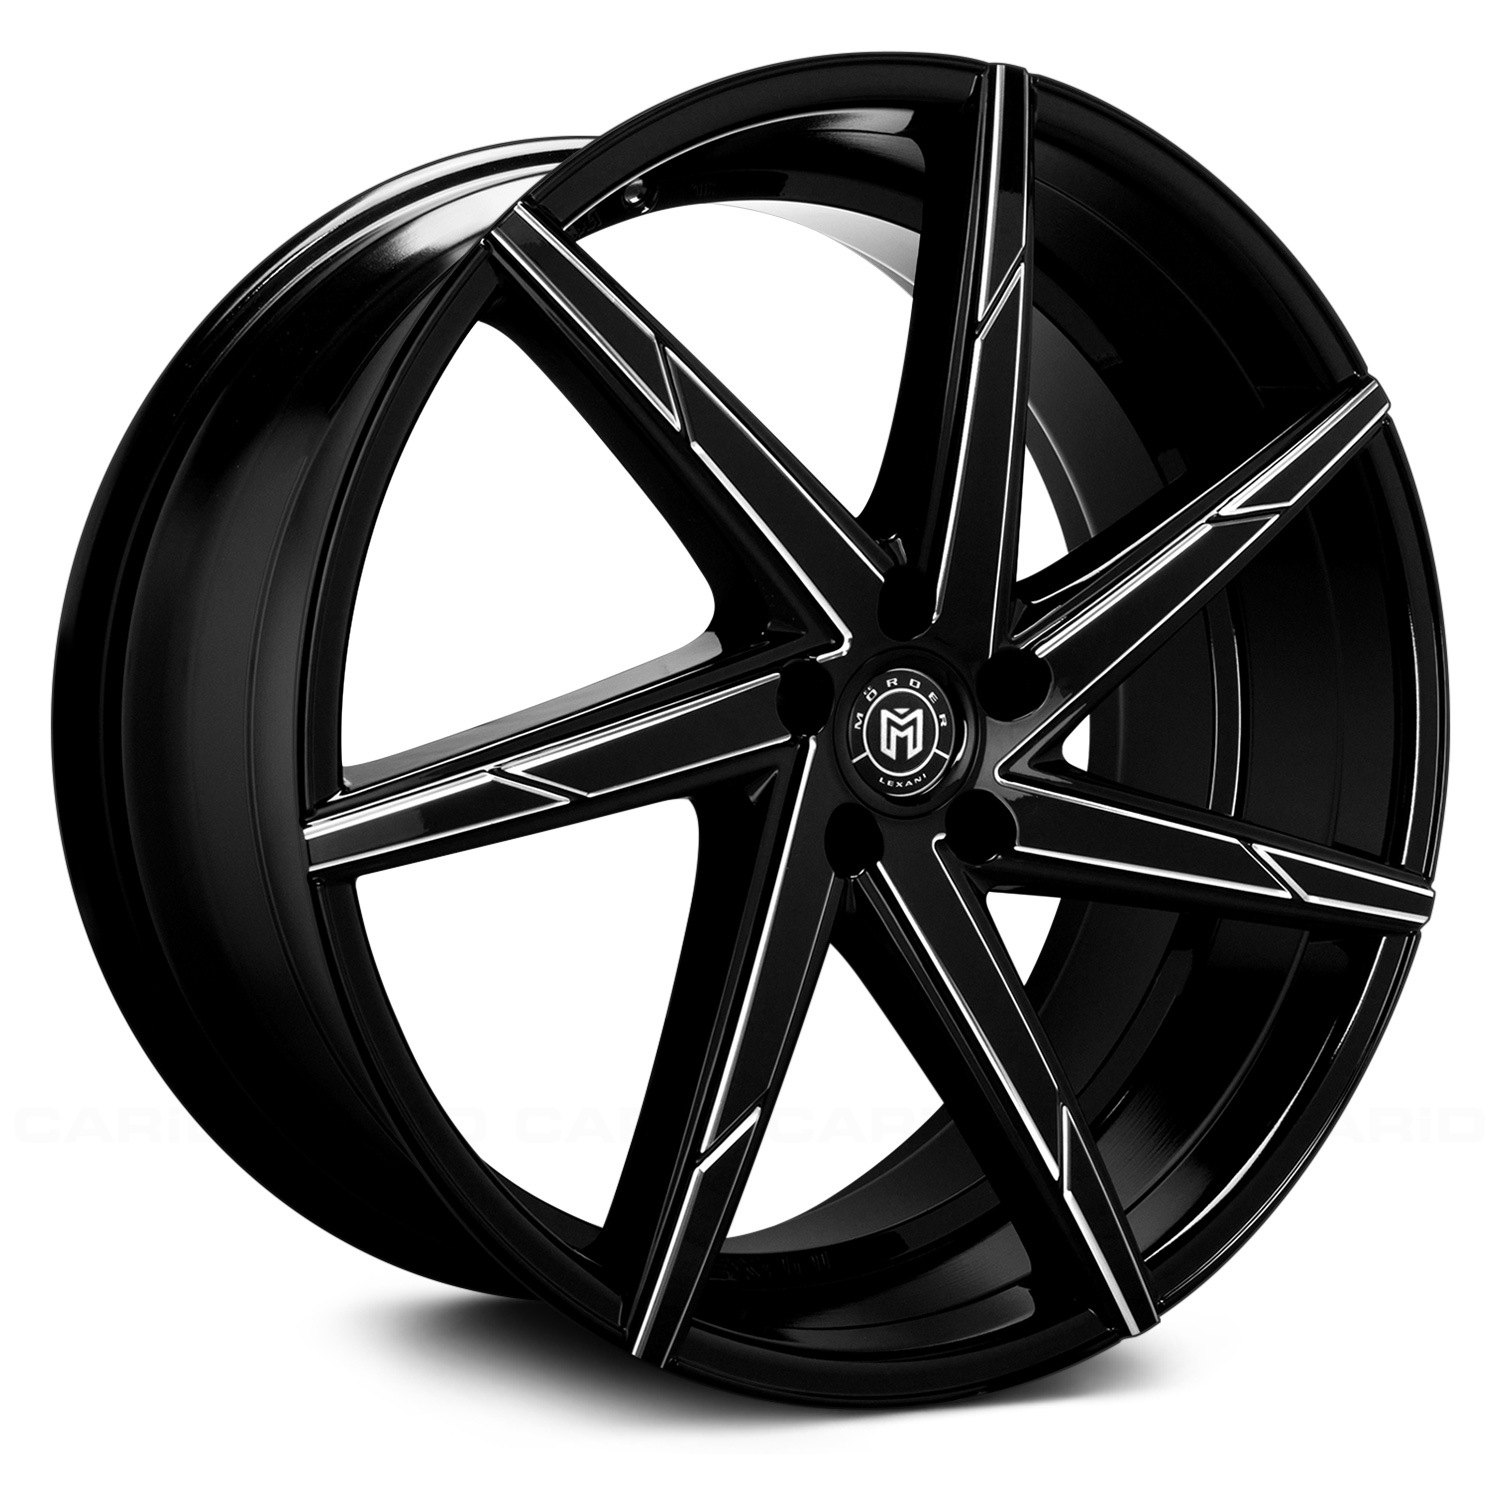 Gloss Black With Machined Accents Rims: Gloss Black With CNC Machined